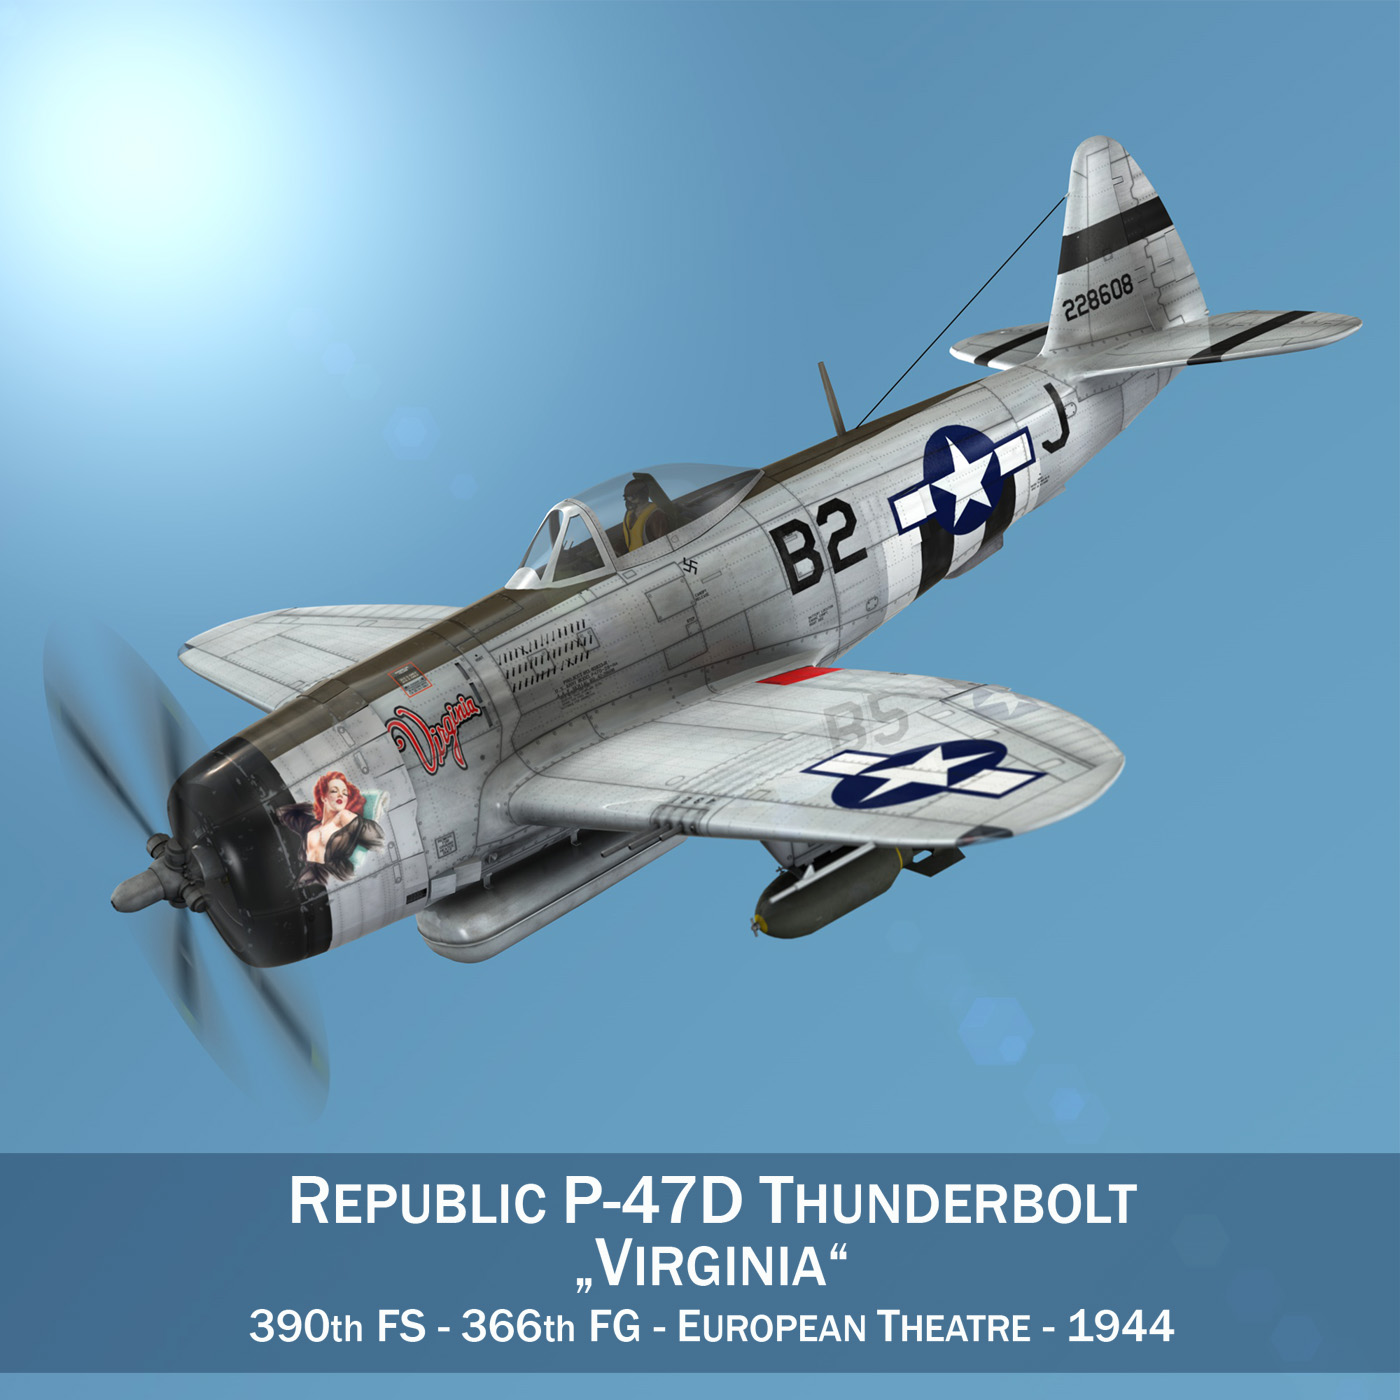 republic p-47d thunderbolt – virginia 3d model c4d fbx 3ds lwo lw lws obj 266768